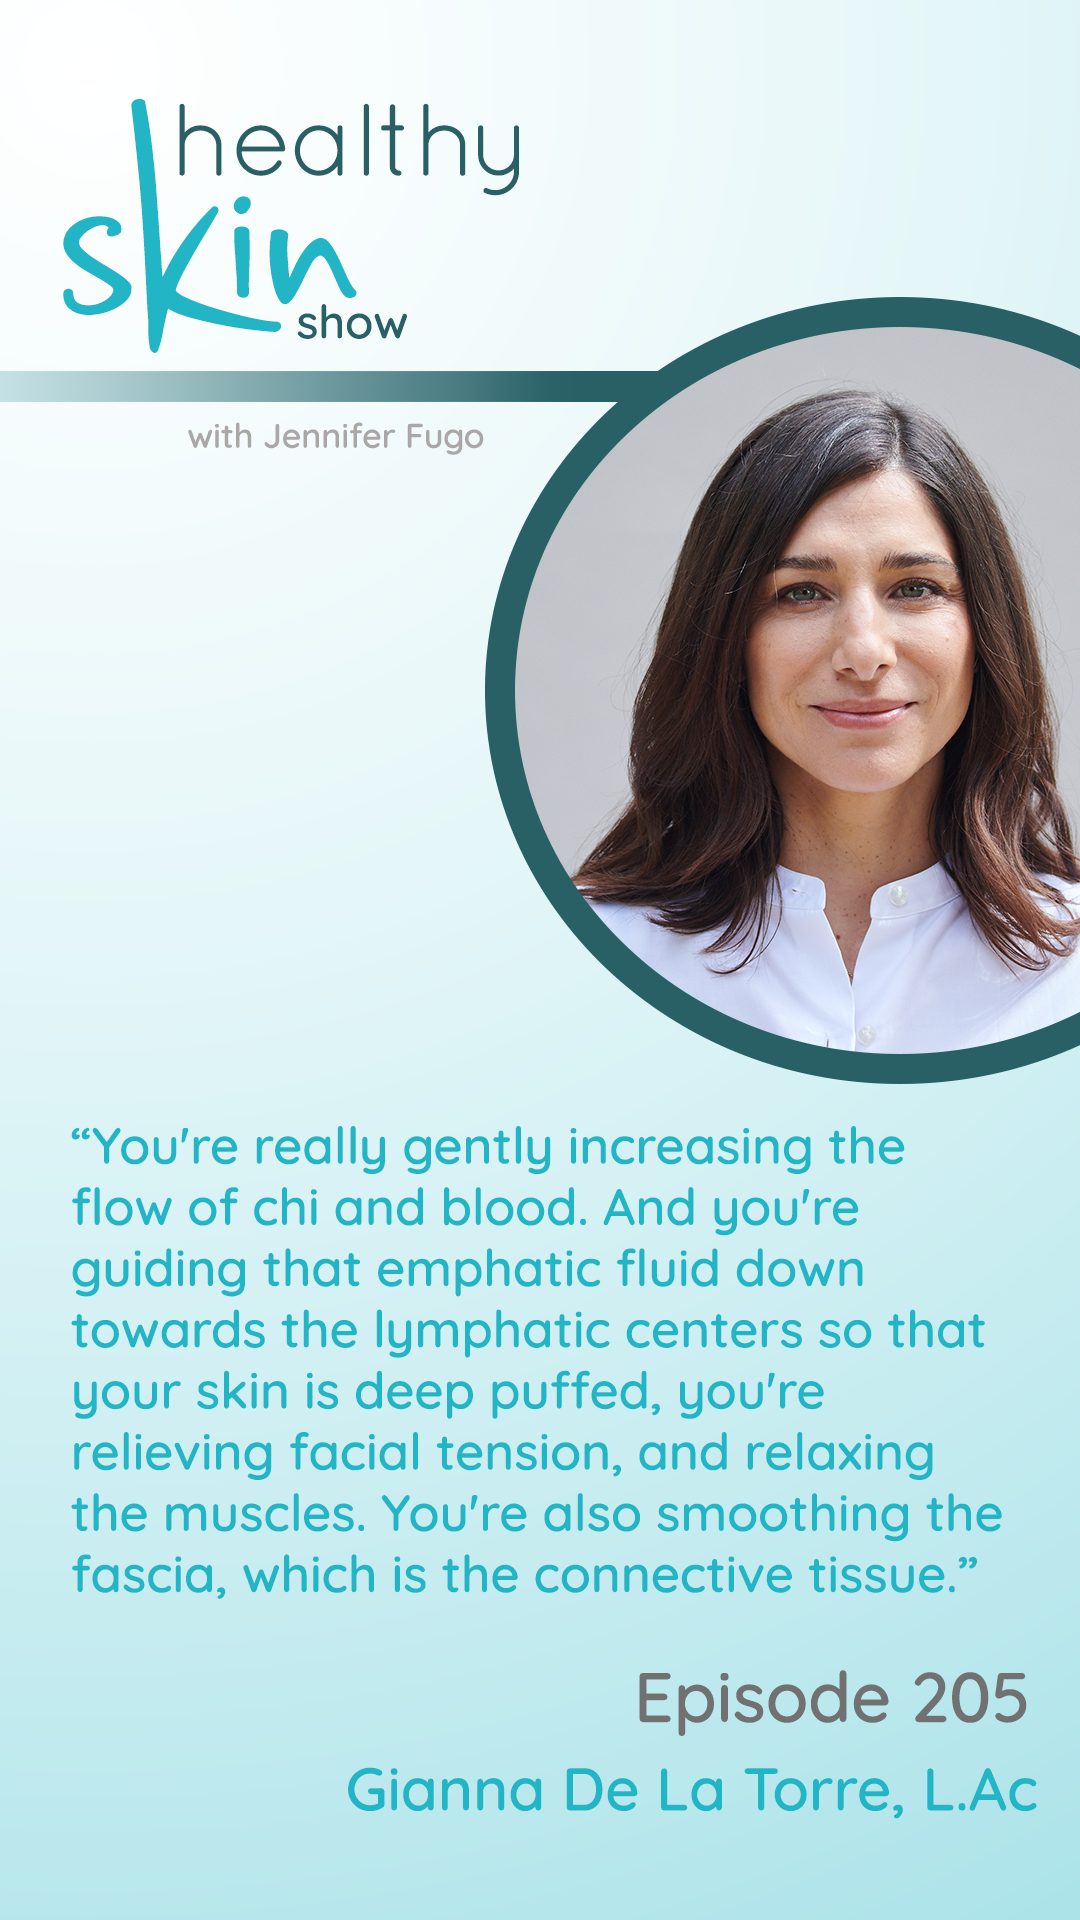 """""""You're really gently increasing the flow of chi and blood. And you're guiding that emphatic fluid down towards the lymphatic centers so that your skin is deep puffed, you're relieving facial tension, and relaxing the muscles. You're also smoothing the fascia, which is the connective tissue."""""""